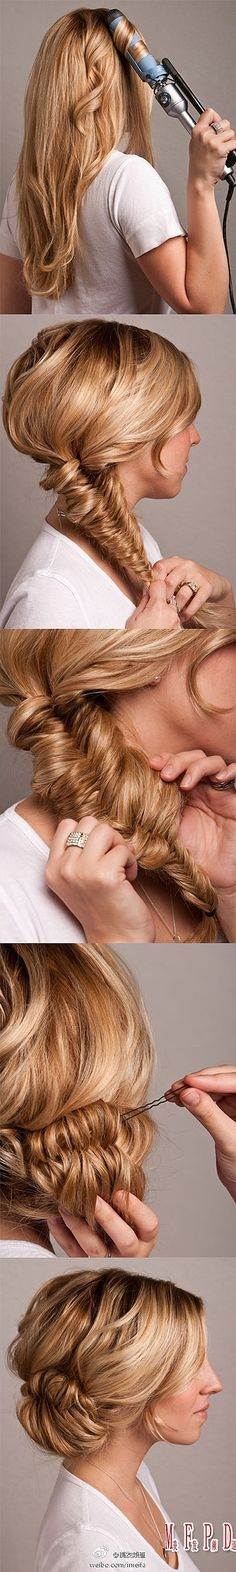 Neat fishtail idea!